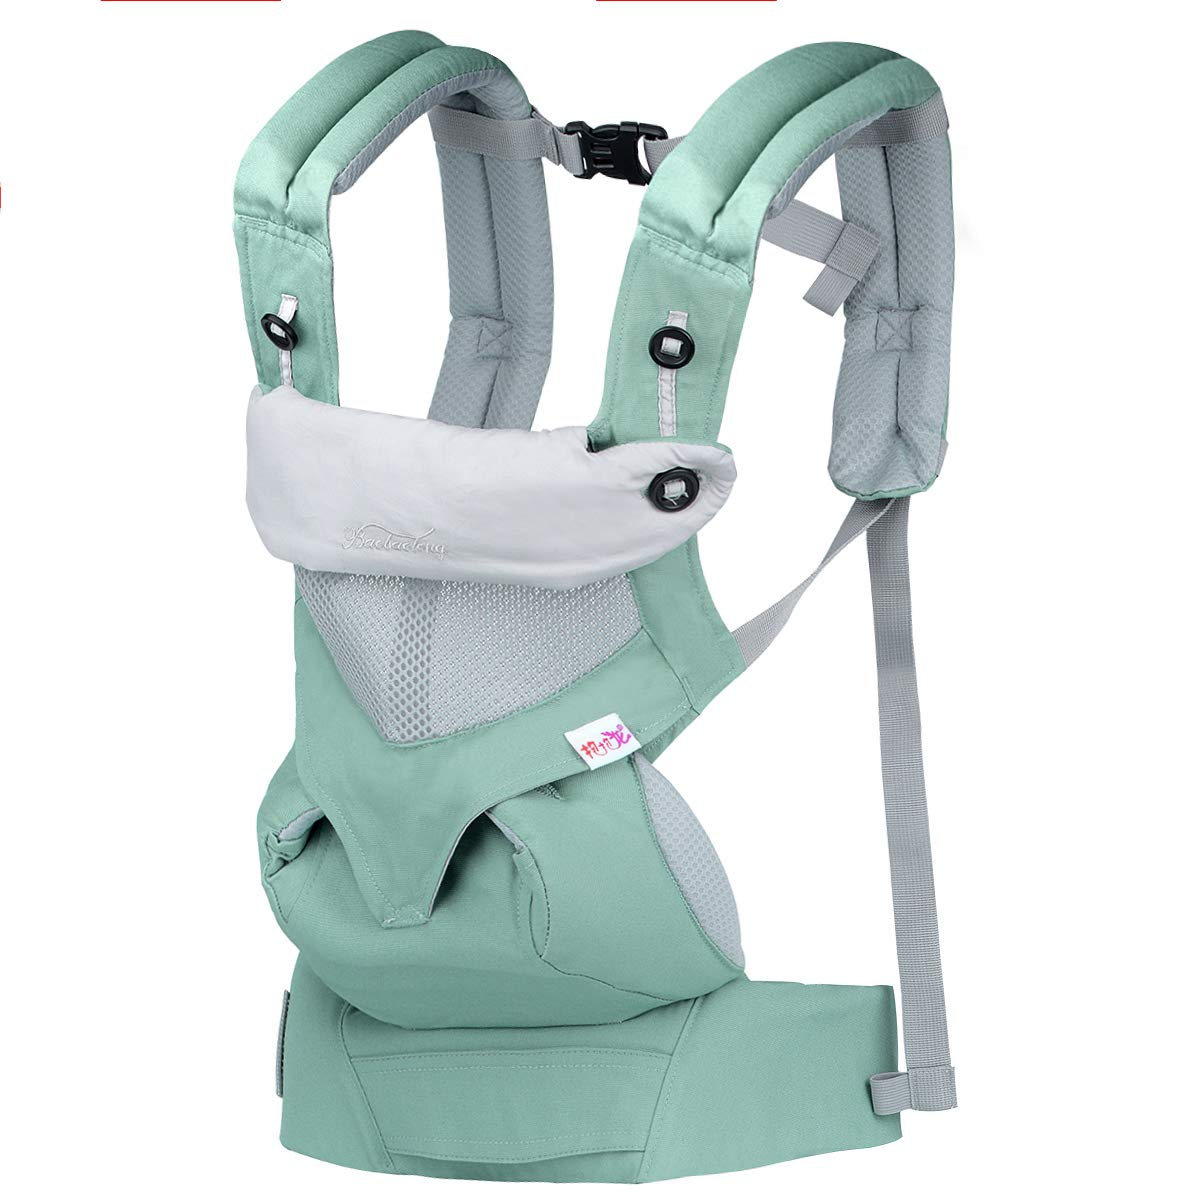 Upgrow Baby Carrier Slings Safety Baby Front Back Carrier Infant Backpack Wrap Harness with Hood for Newborn Infants Toddlers (Pink)